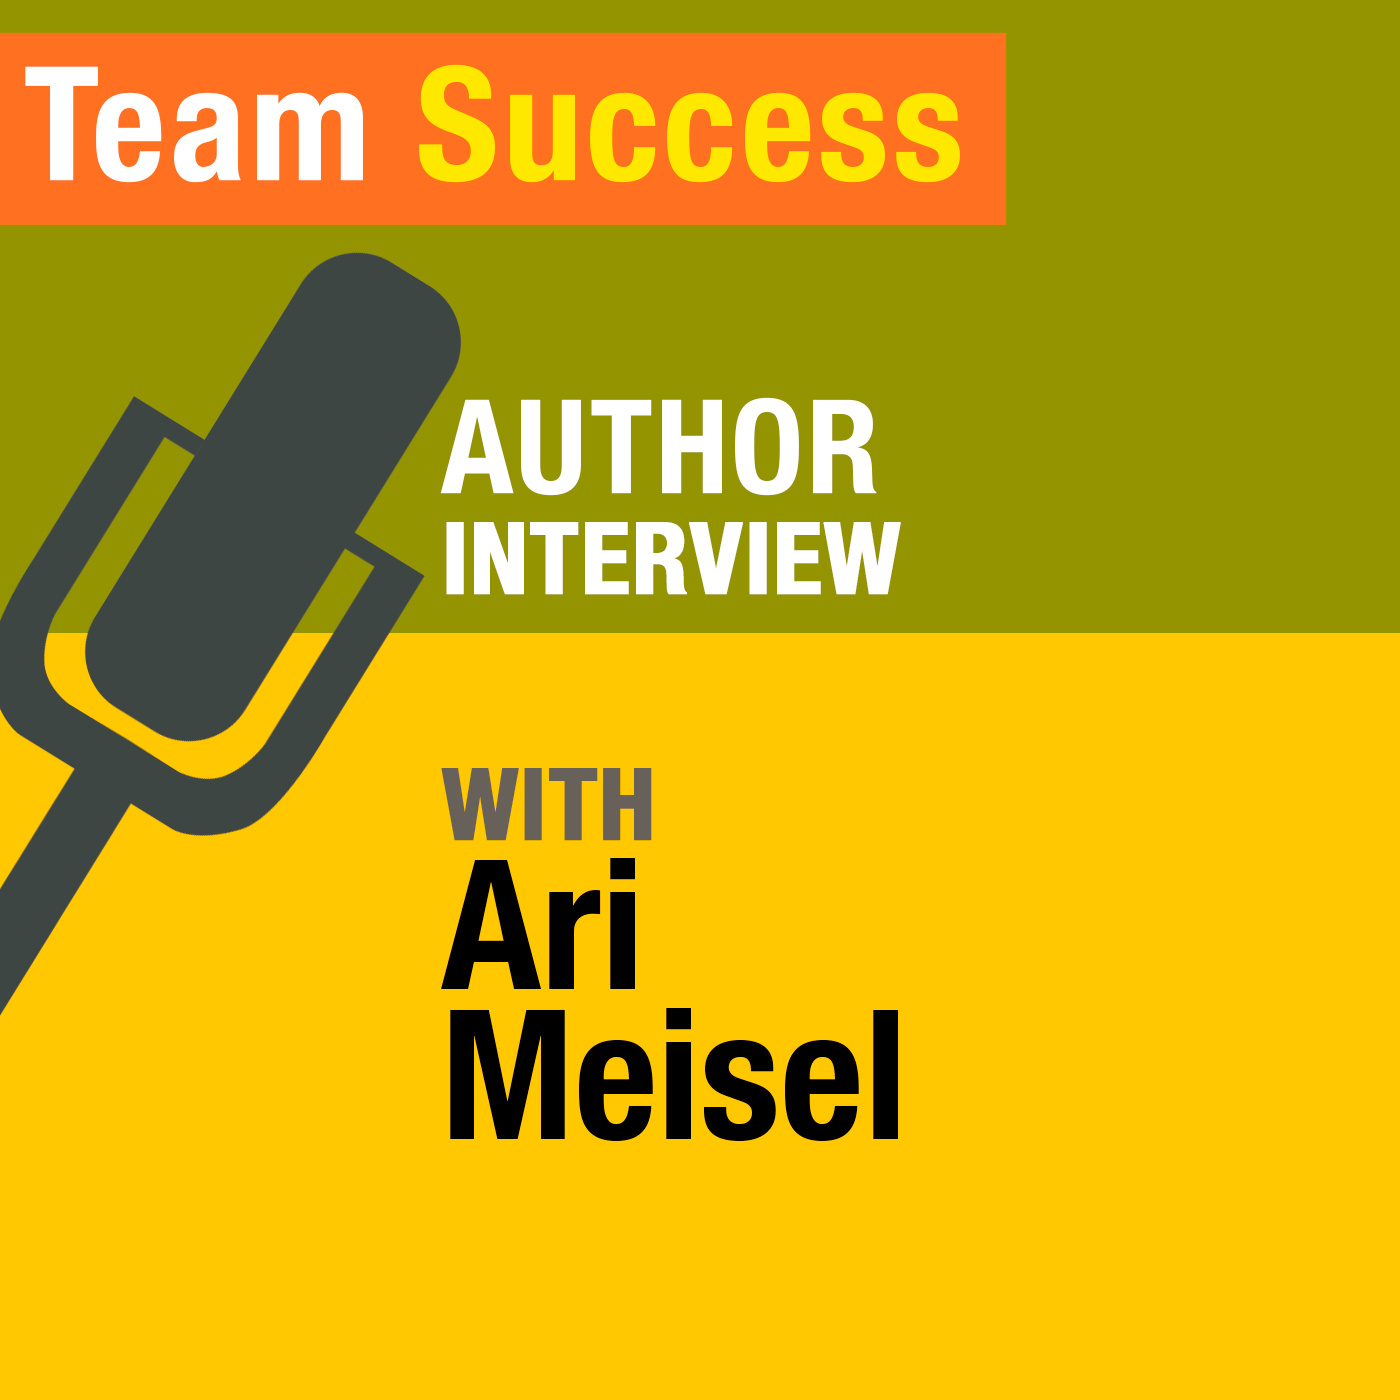 An Interview With Ari Meisel